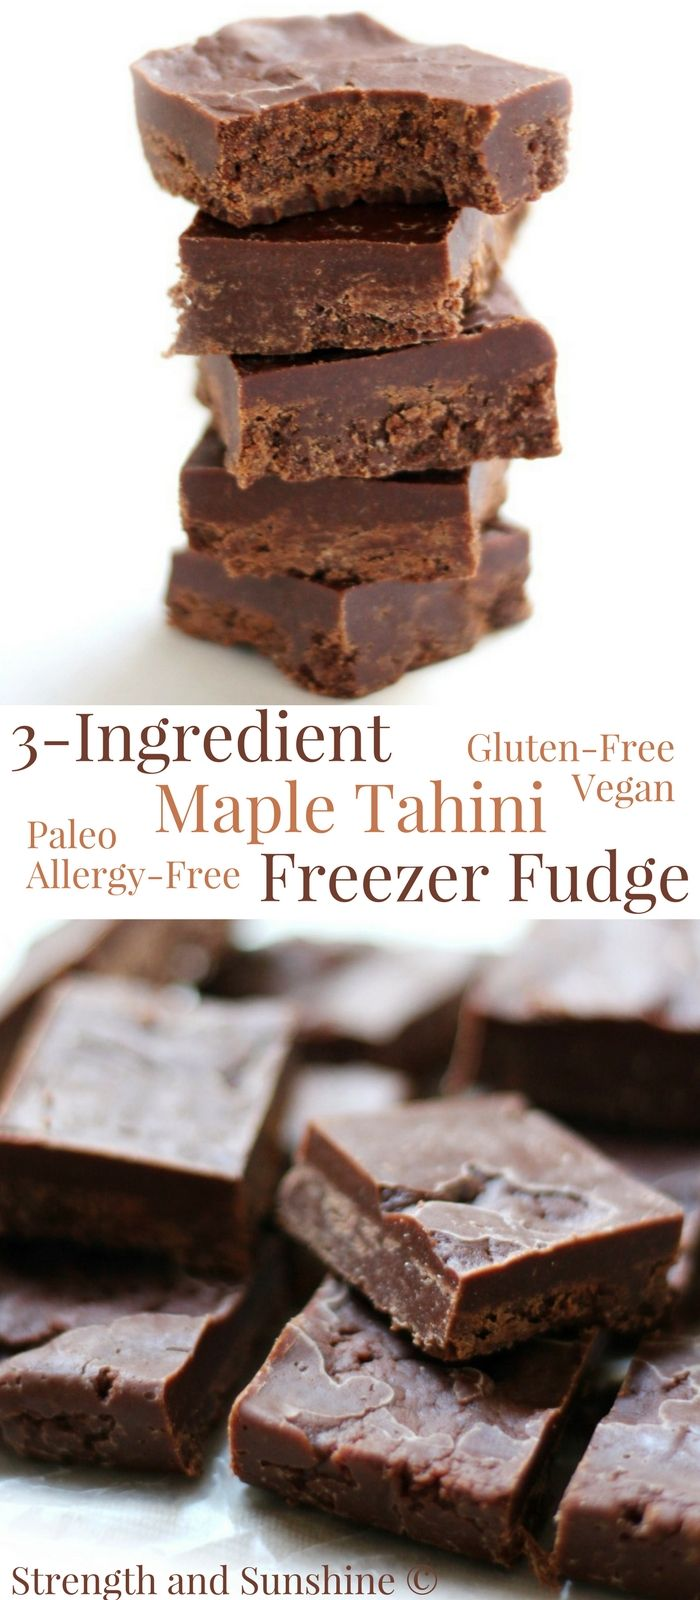 3-Ingredient Maple Tahini Freezer Fudge (Gluten-Free, Vegan, Paleo) | Strength and Sunshine @RebeccaGF666 Easy like 1, 2, 3! 3-Ingredient Maple Tahini Freezer Fudge that's gluten-free, vegan, paleo, and top-8 allergy-free! A creamy and delicious no-bake dessert recipe with just dark chocolate, sesame tahini, and pure maple syrup! Give it as a gift or keep it in the freezer for a sweet tooth satisfying snack! #freezerfudge #tahini #maplesyrup #glutenfree #vegan #paleo #darkchocolate #fudge